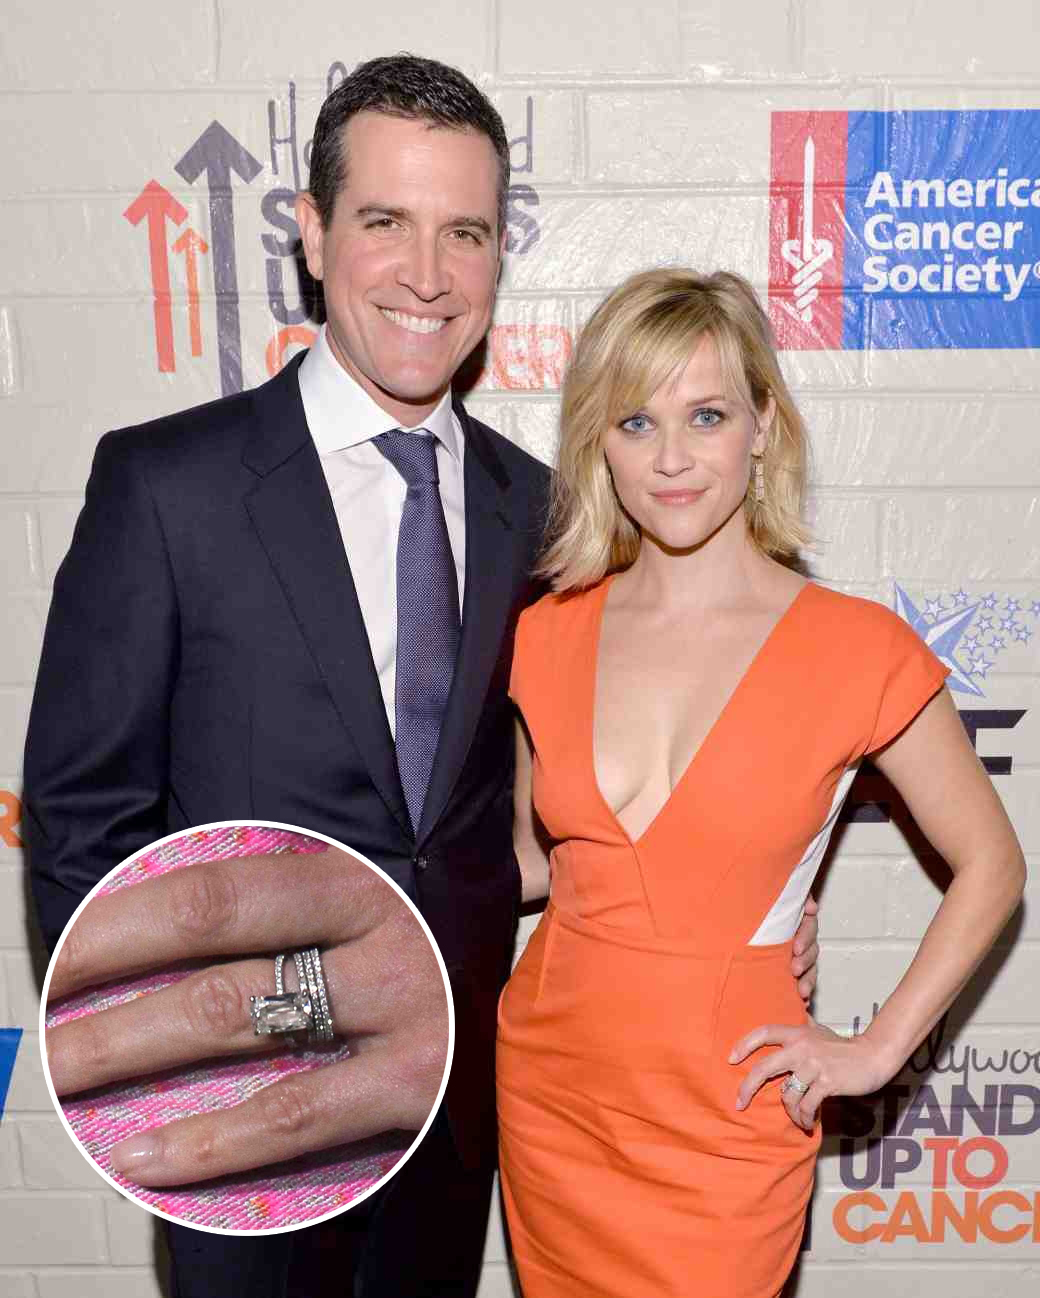 reese-witherspoon-inset-0316.jpg